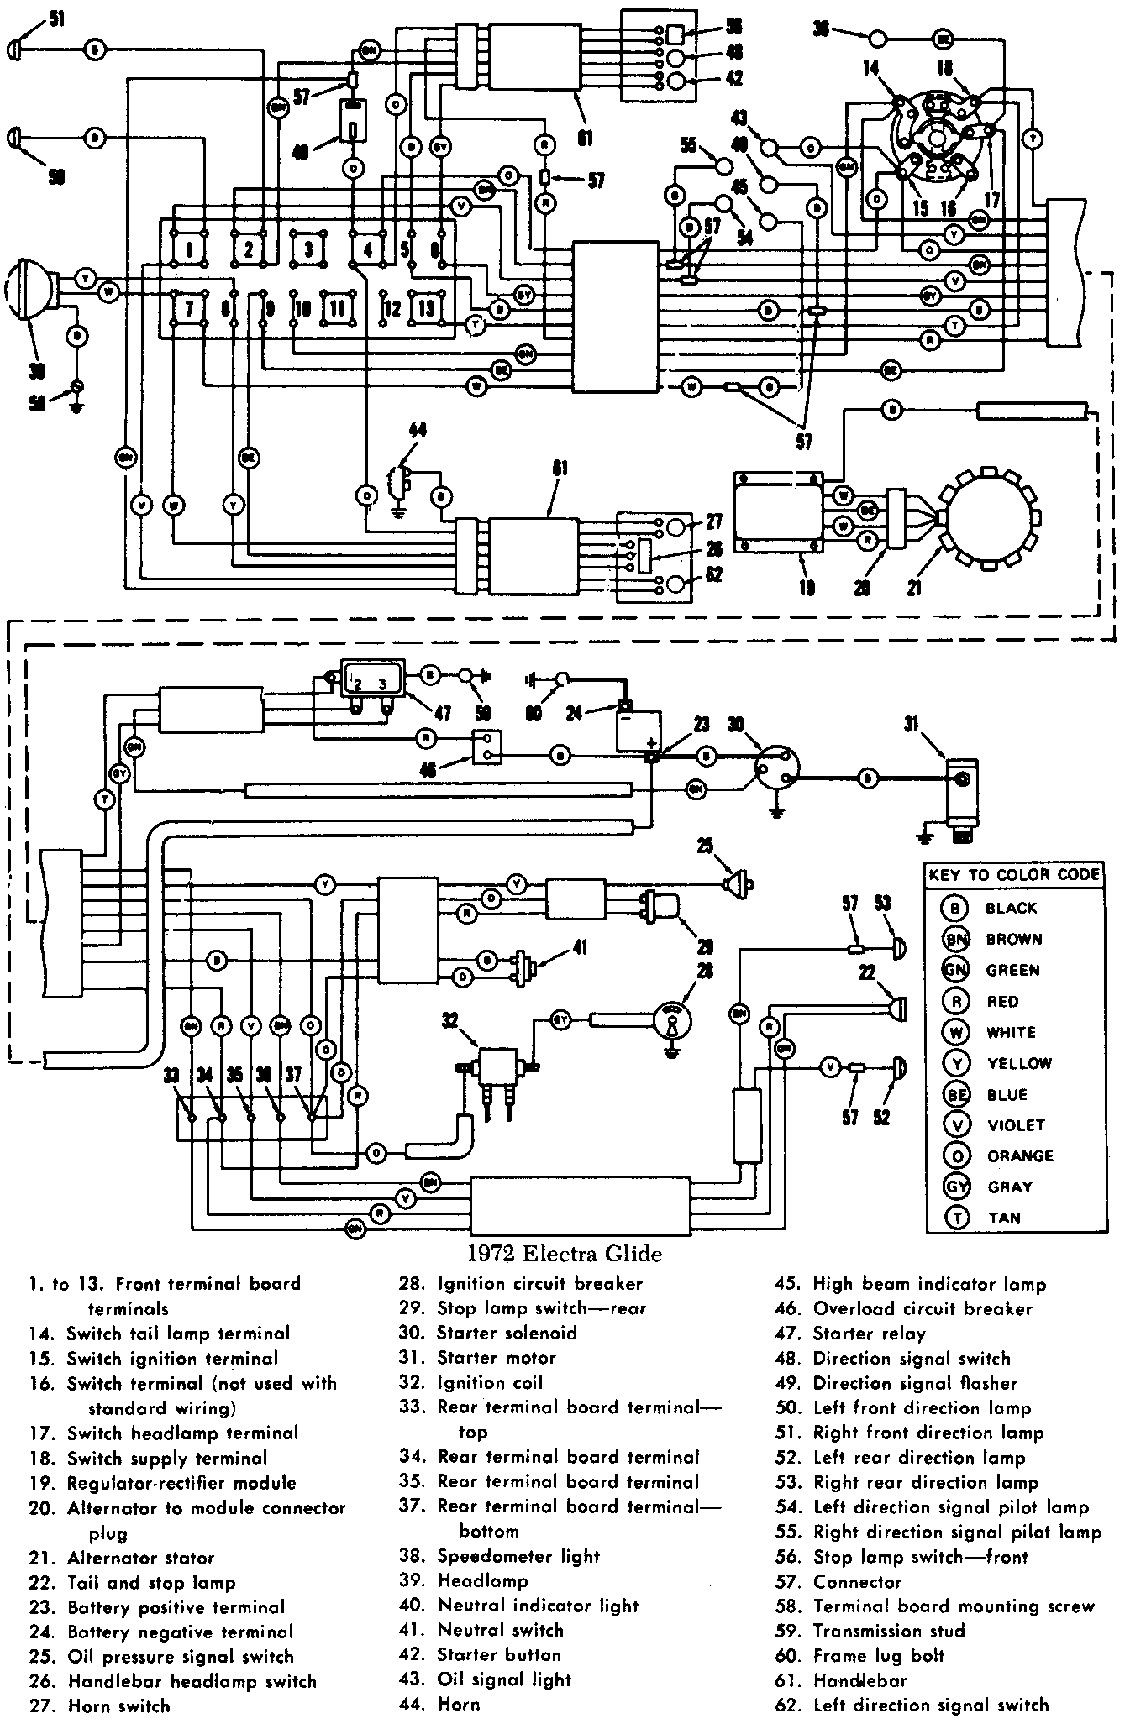 50 Free Harley Davidson Wiring Diagrams Ma4g Check More At